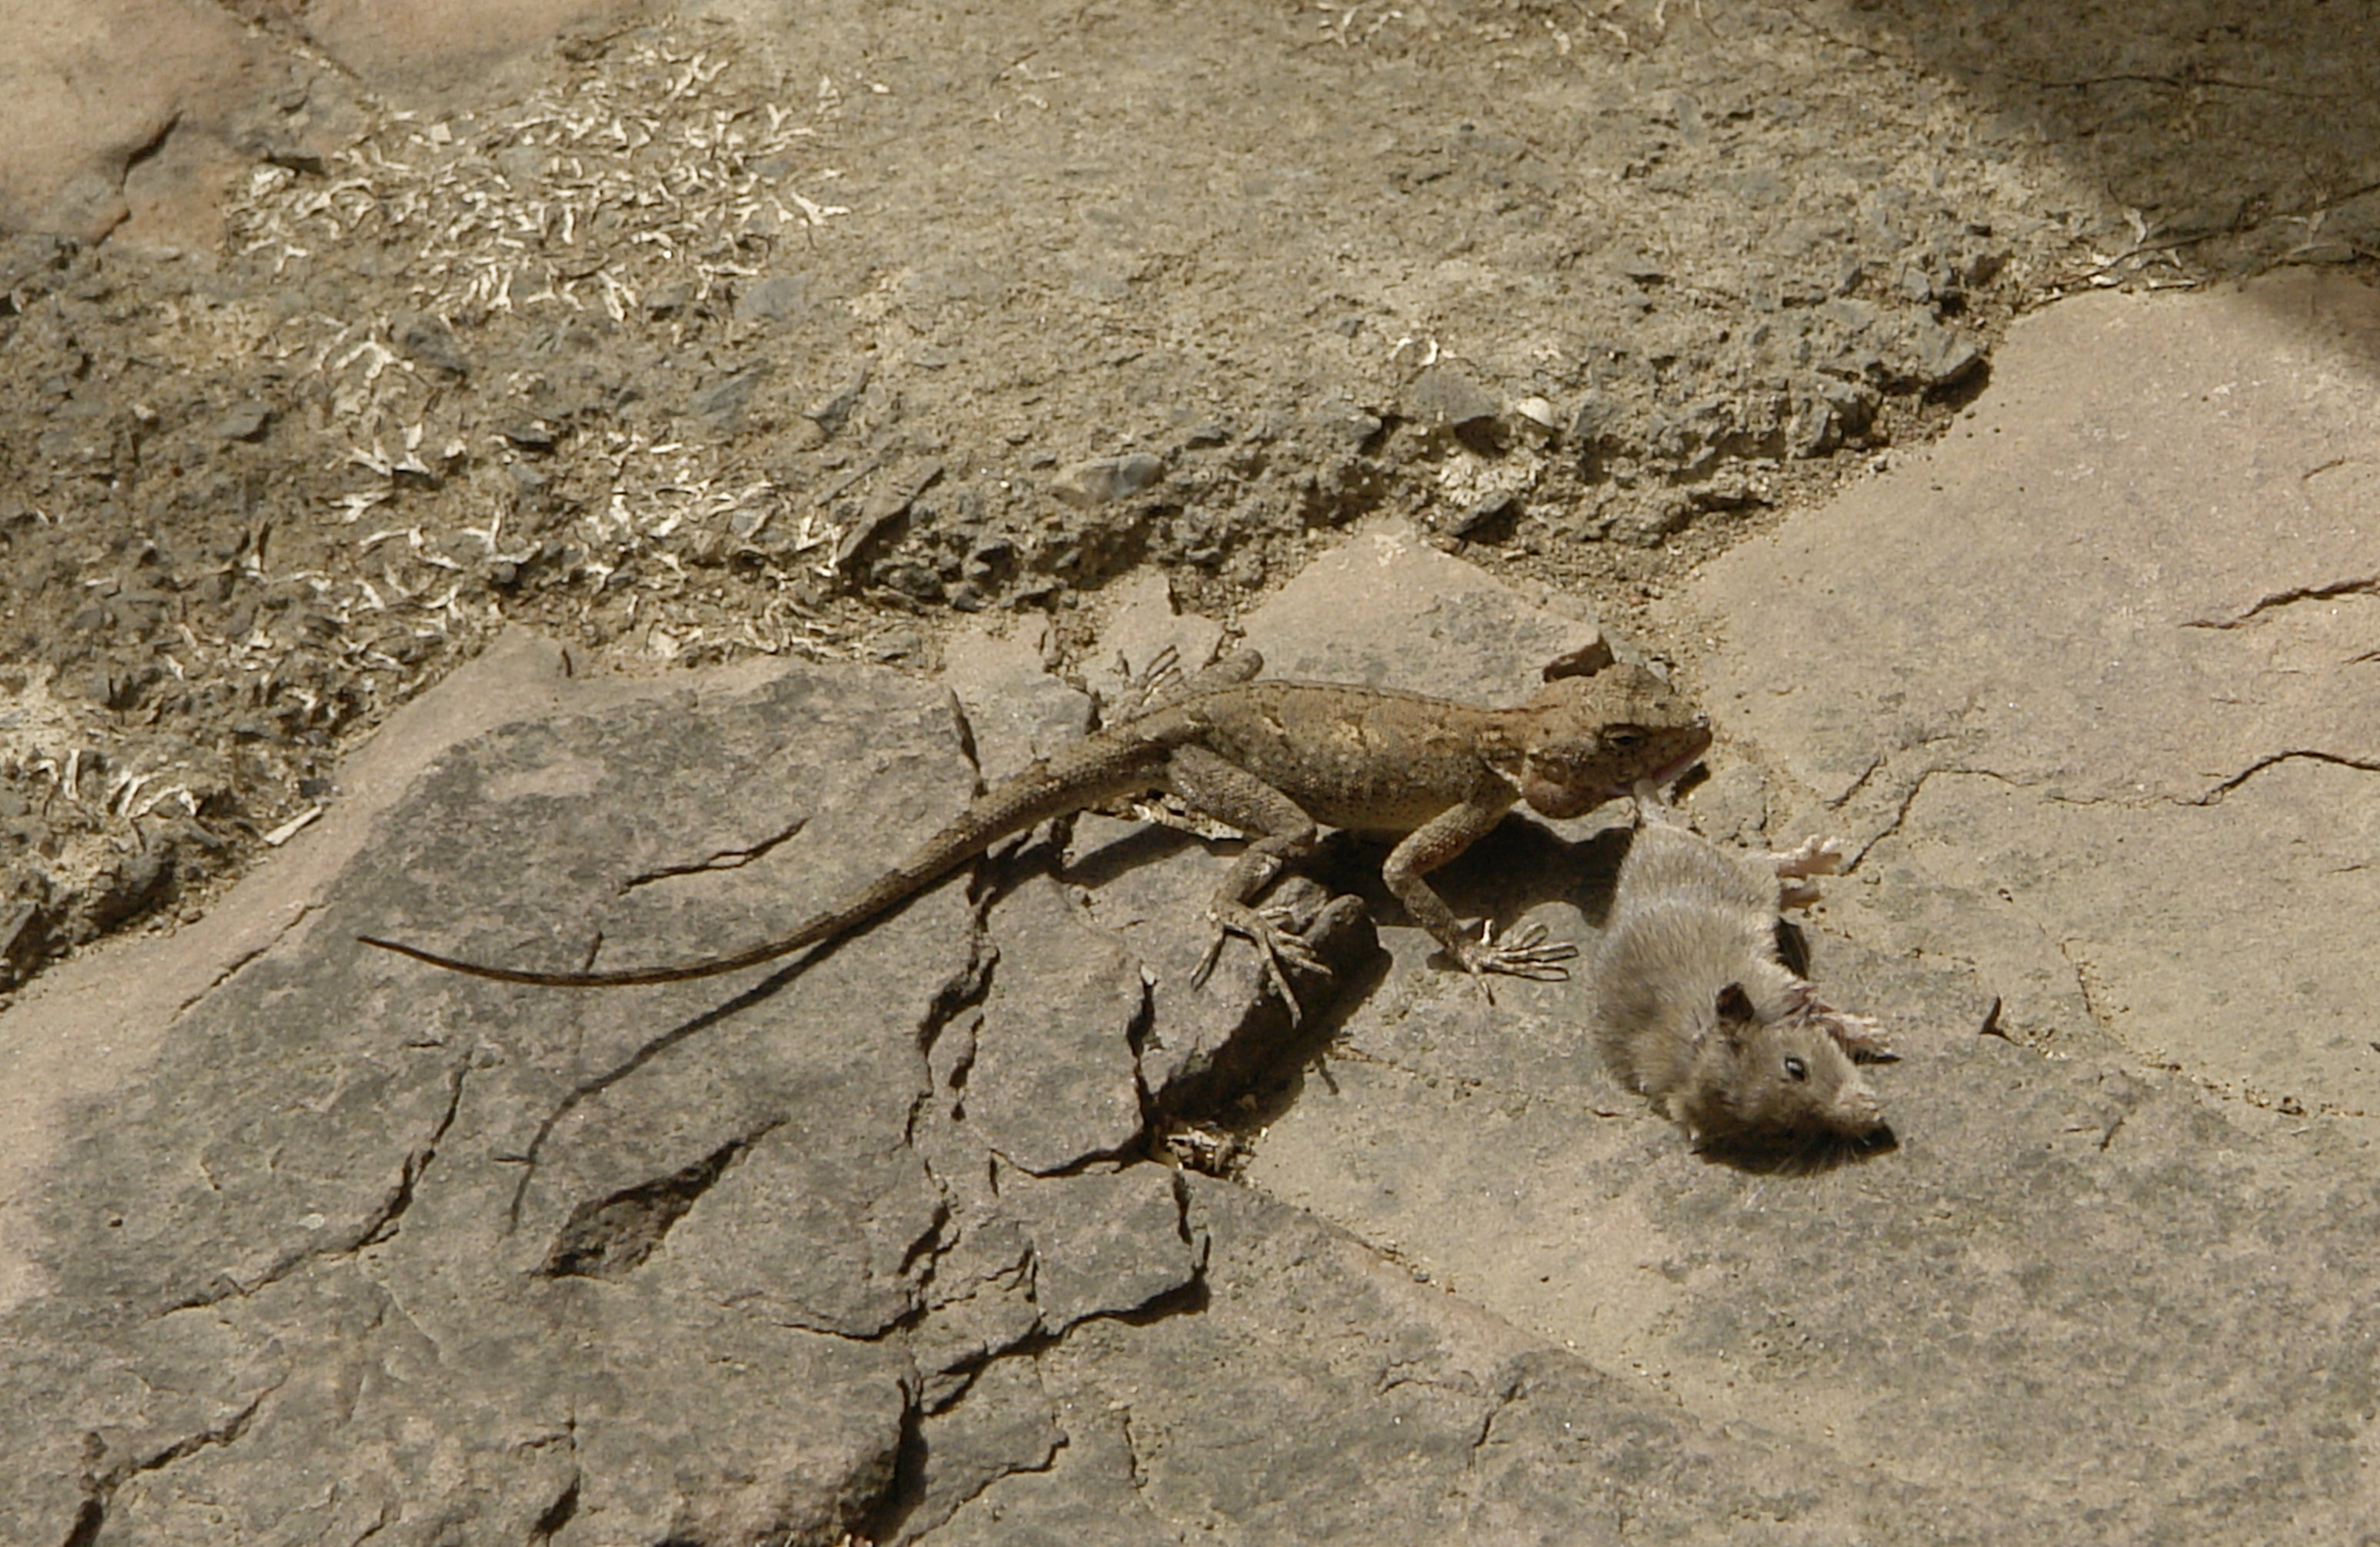 Lizards Eating Other Lizards File:lizard Eating a Mouse